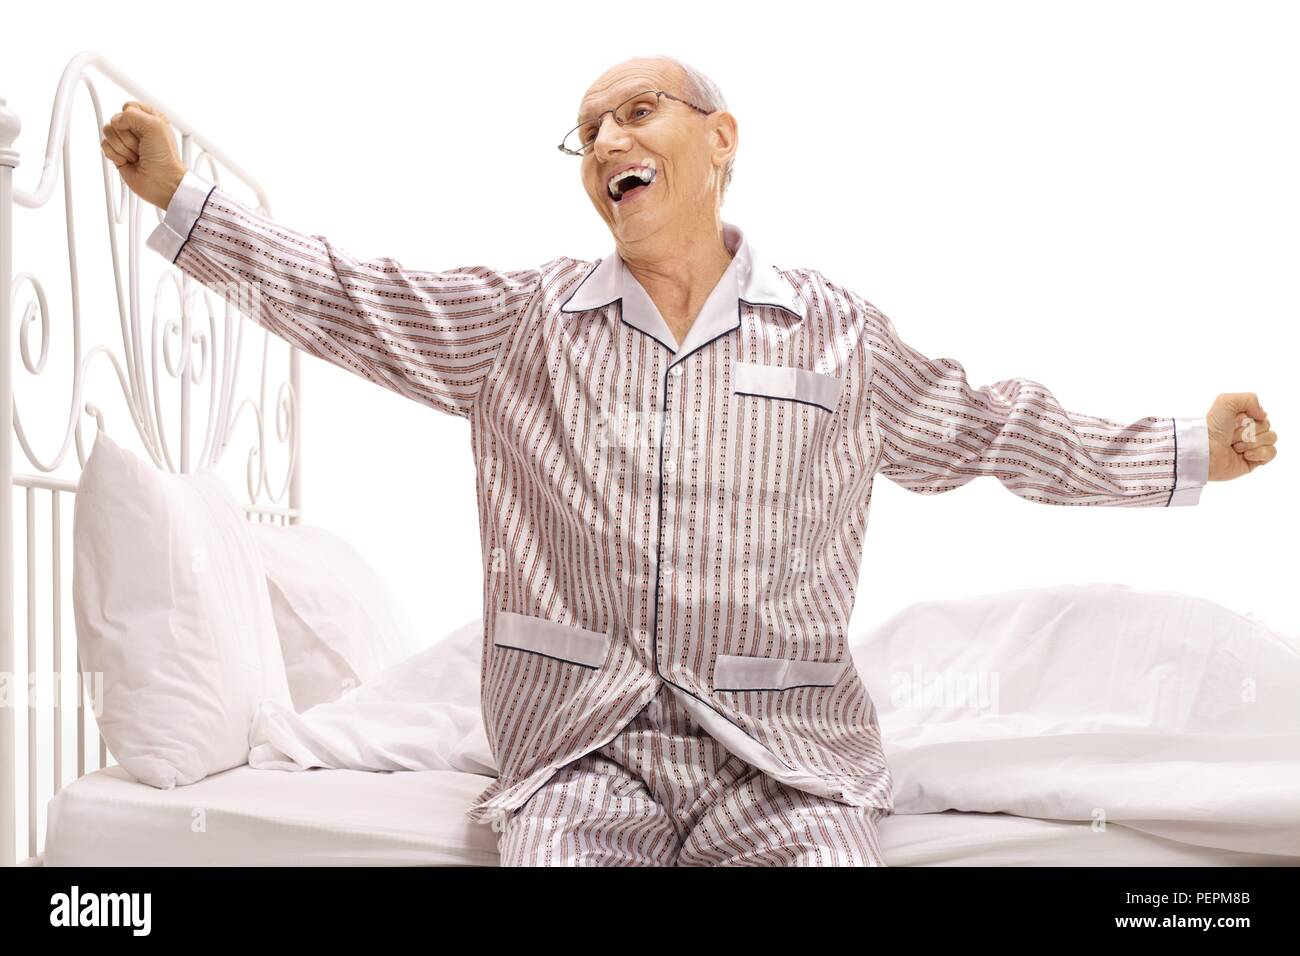 cd2104ccc2 Elderly man in pajamas sitting on a bed stretching himself isolated on white  background